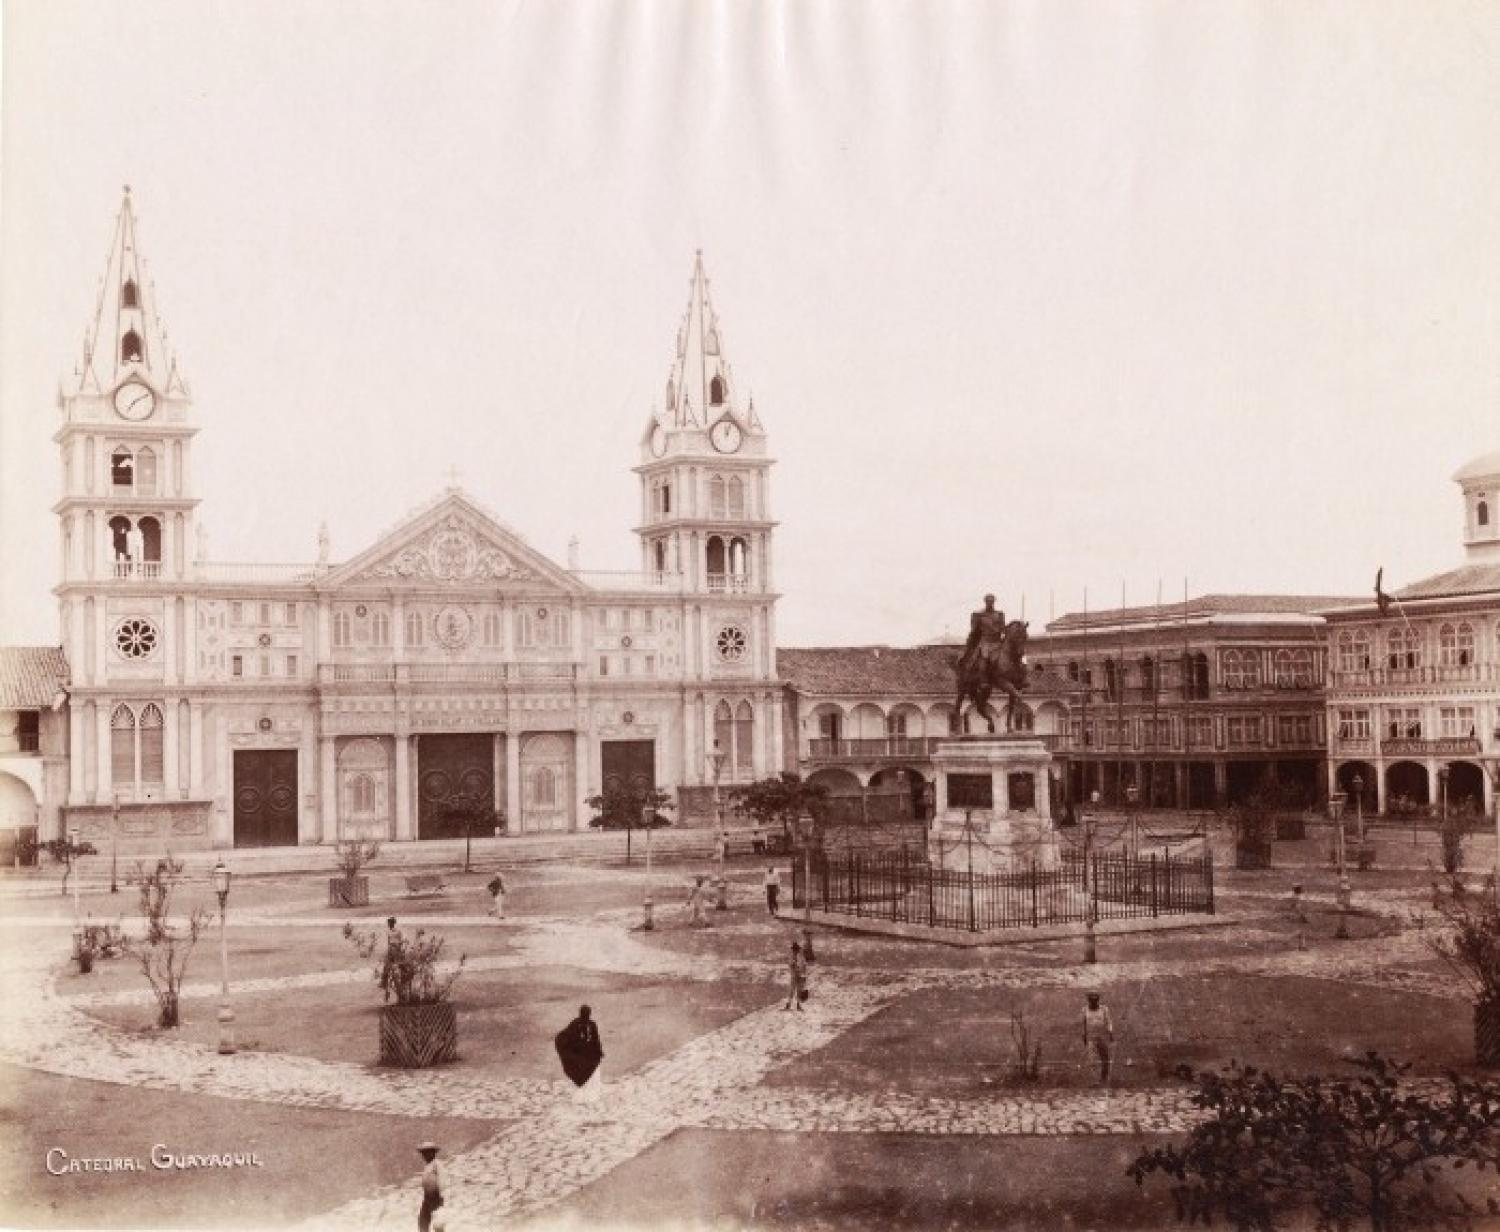 The Cathedral Guayaquil Ecuador C1885